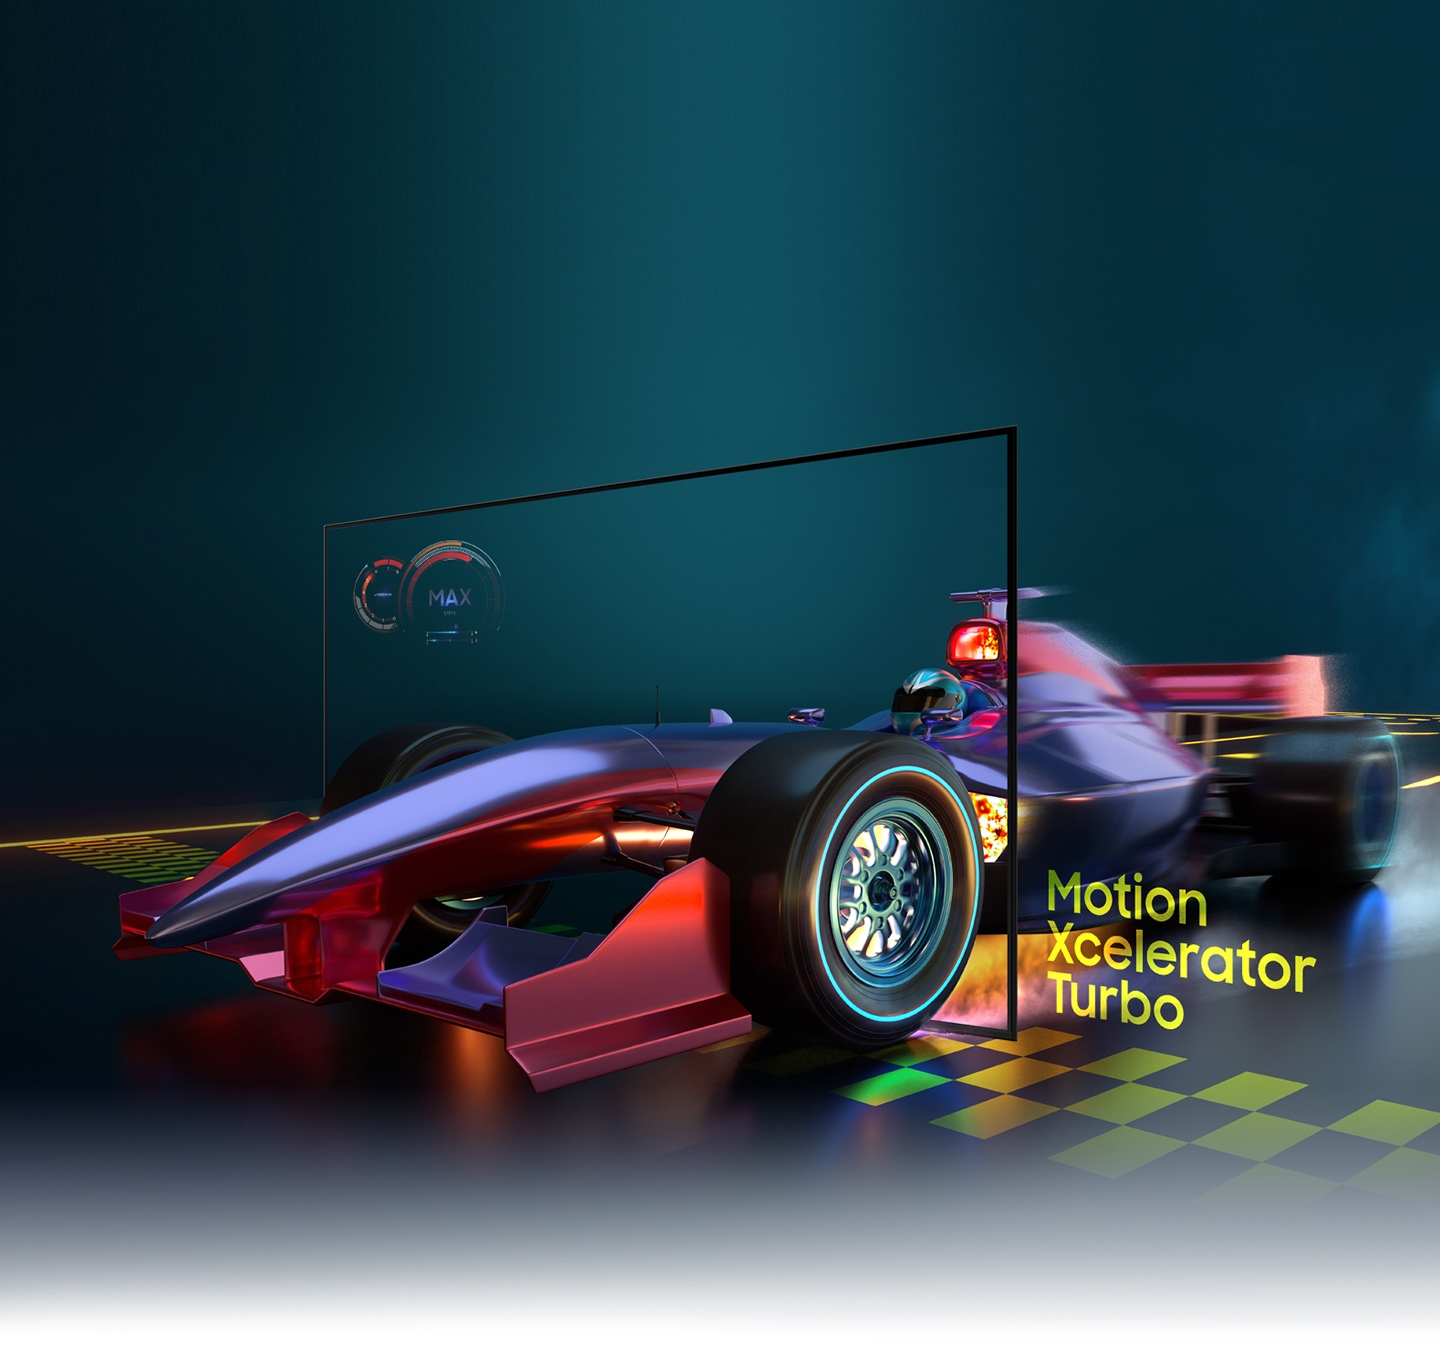 The image of a race car looks clear and visible inside the AU9000 screen due to motion xcelerator turbo technology.